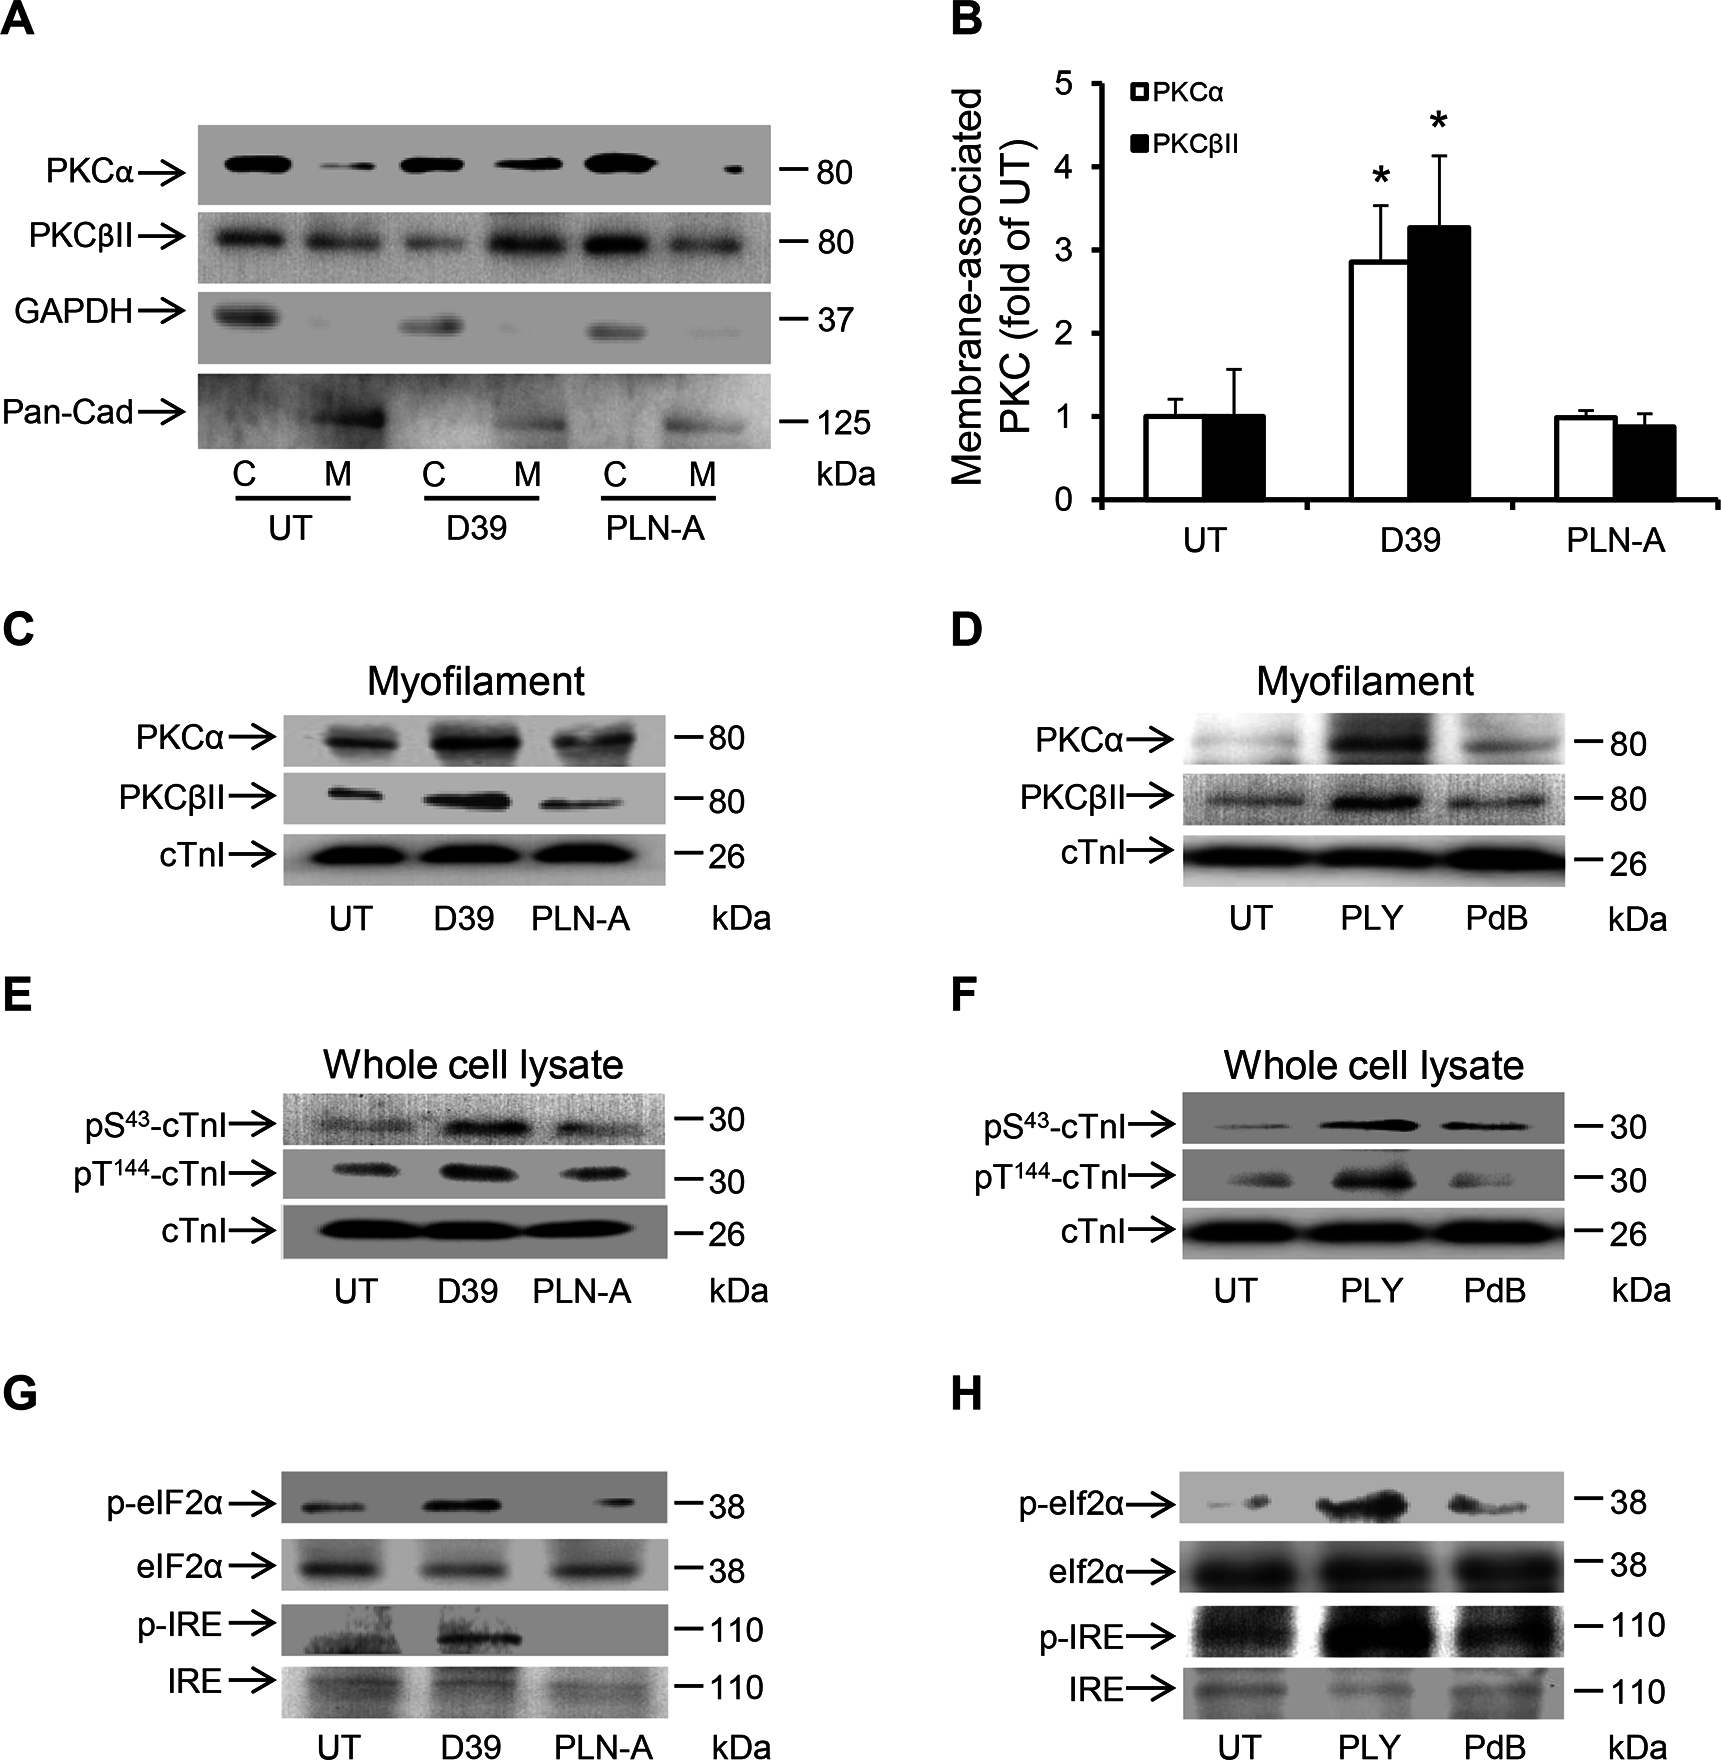 Activation of PKCα-cTnI pathway and ER stress in murine cardiomyocytes exposed to D39 or PLY.